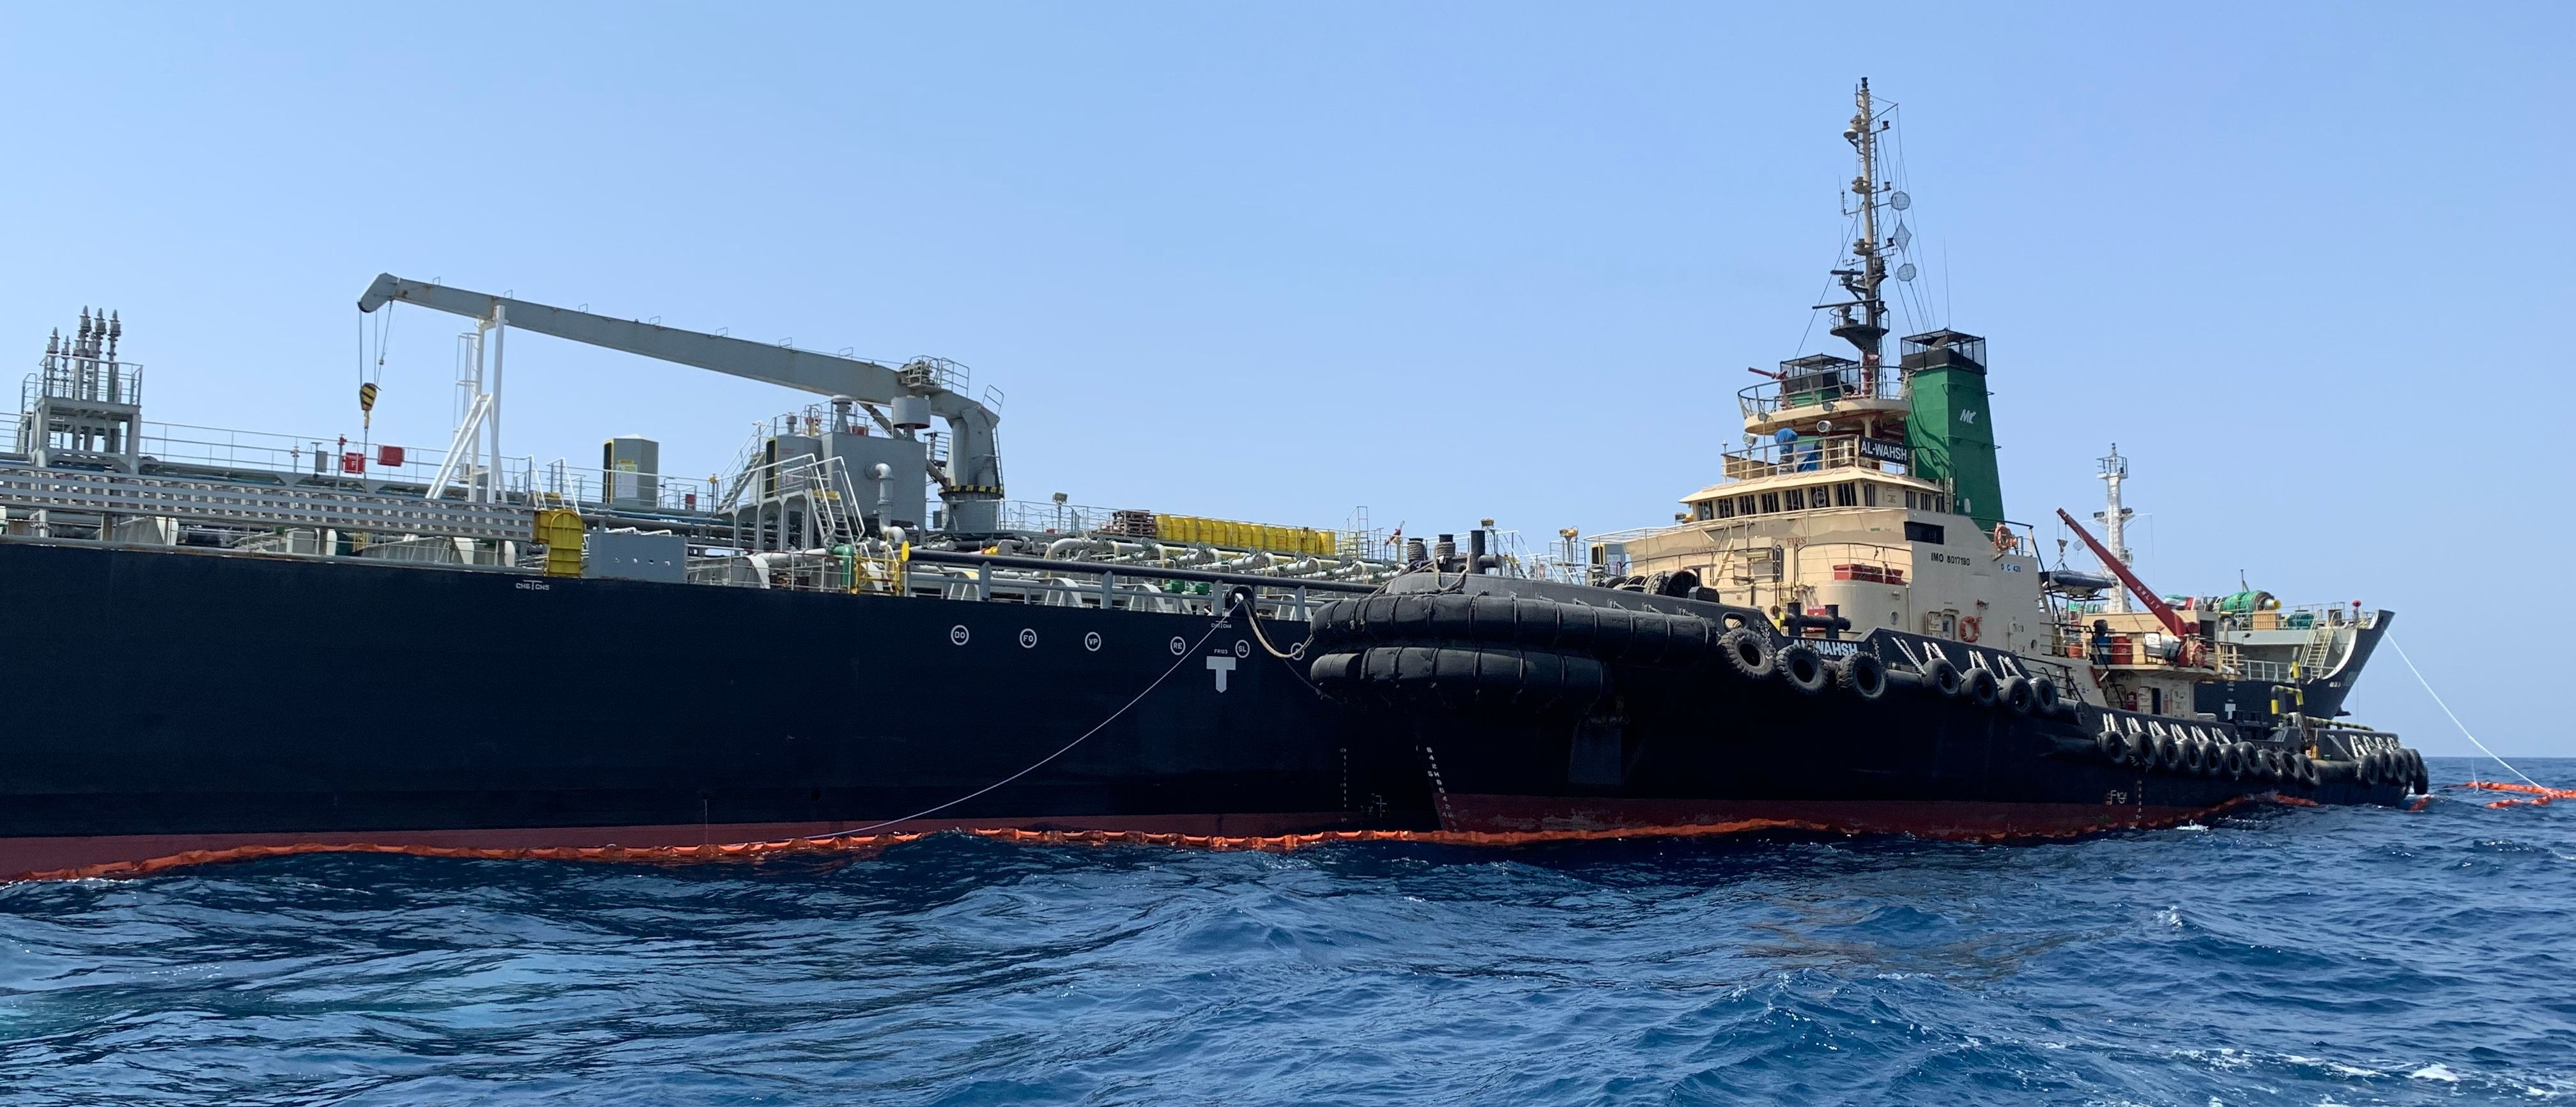 "A picture taken during a guided tour by the U.S. Navy (NAVCENT) shows the Japanese oil tanker Kokuka Courageous off the port of the Gulf emirate of Fujairah on June 19, 2019. - The Japanese tanker attacked in the Gulf of Oman last week was damaged by a limpet mine resembling Iranian mines, the US military in the Middle East said today. Commander Sean Kido of the US Navy told reporters that the US military has recovered biometric information of the assailants on the Japanese ship including ""hand and finger prints."" Two oil tankers were damaged in twin attacks close to the Iranian coast on June 13, just outside the strategic Strait of Hormuz. (Photo: MUMEN KHATIB/AFP/Getty Images)"